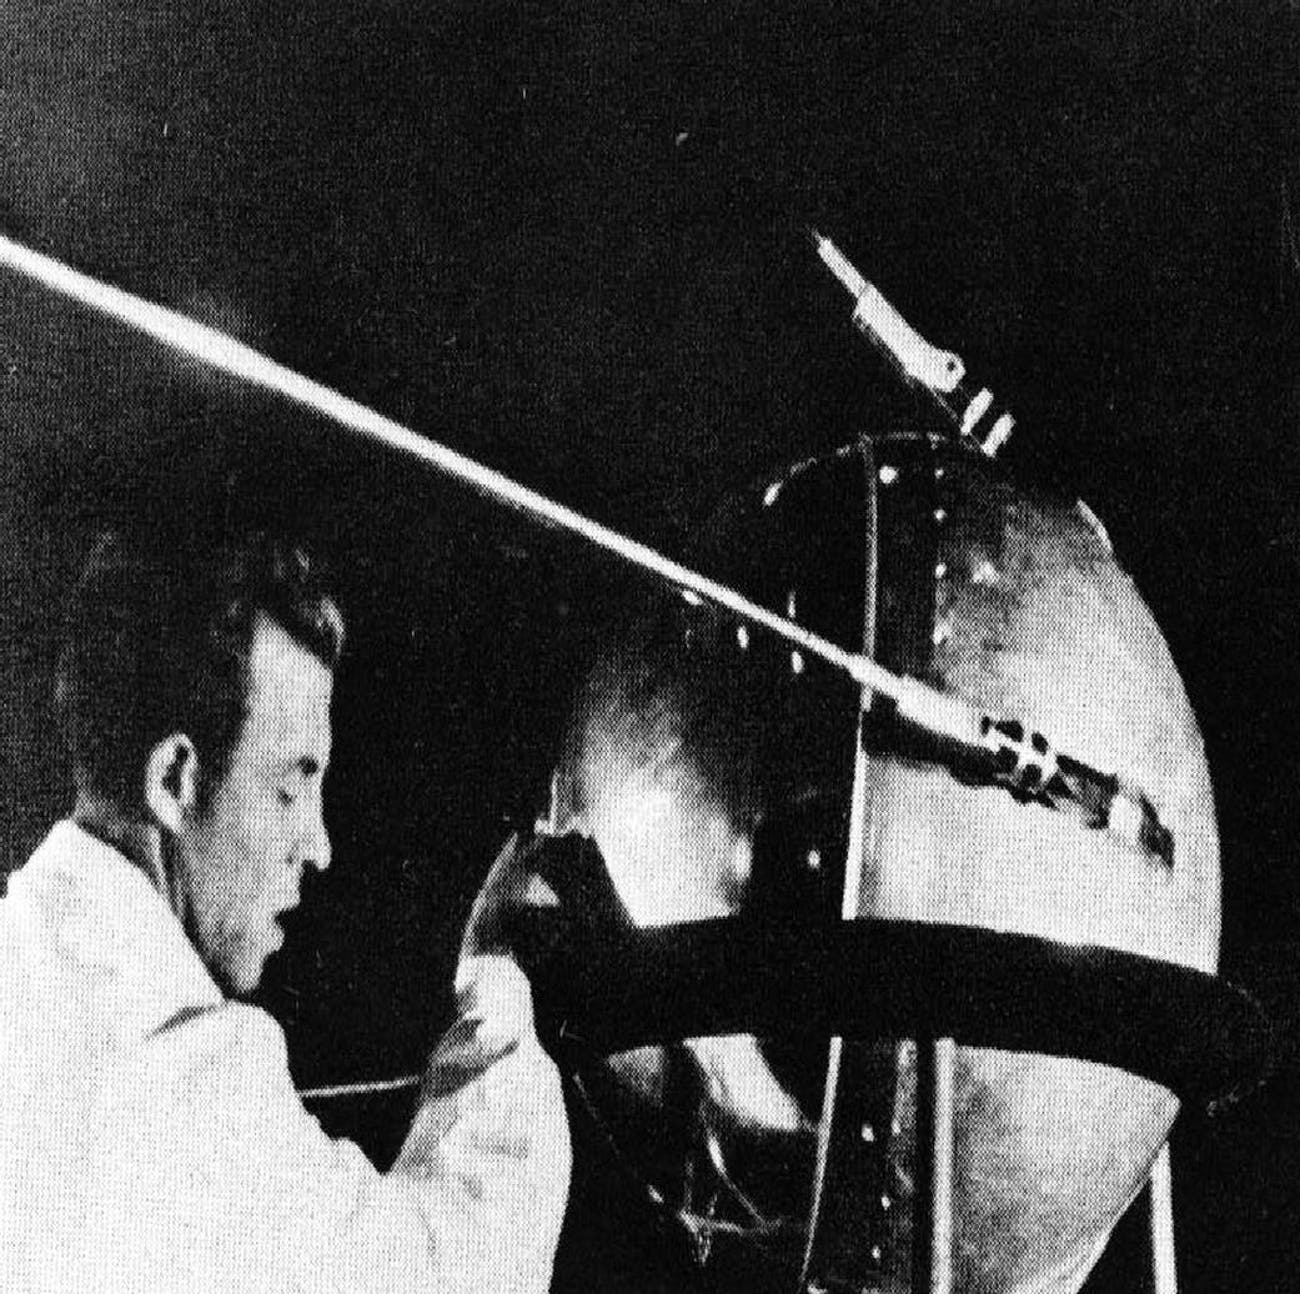 This first official picture of the Soviet satellite Sputnik I was issued in Moscow Oct. 9, 1957. The satellite measured 1 foot, 11 inches and weighed 184 pounds. The Space Age began as the Soviet Union launched Sputnik, the first man-made satellite, into orbit, on Oct. 4, 1957.